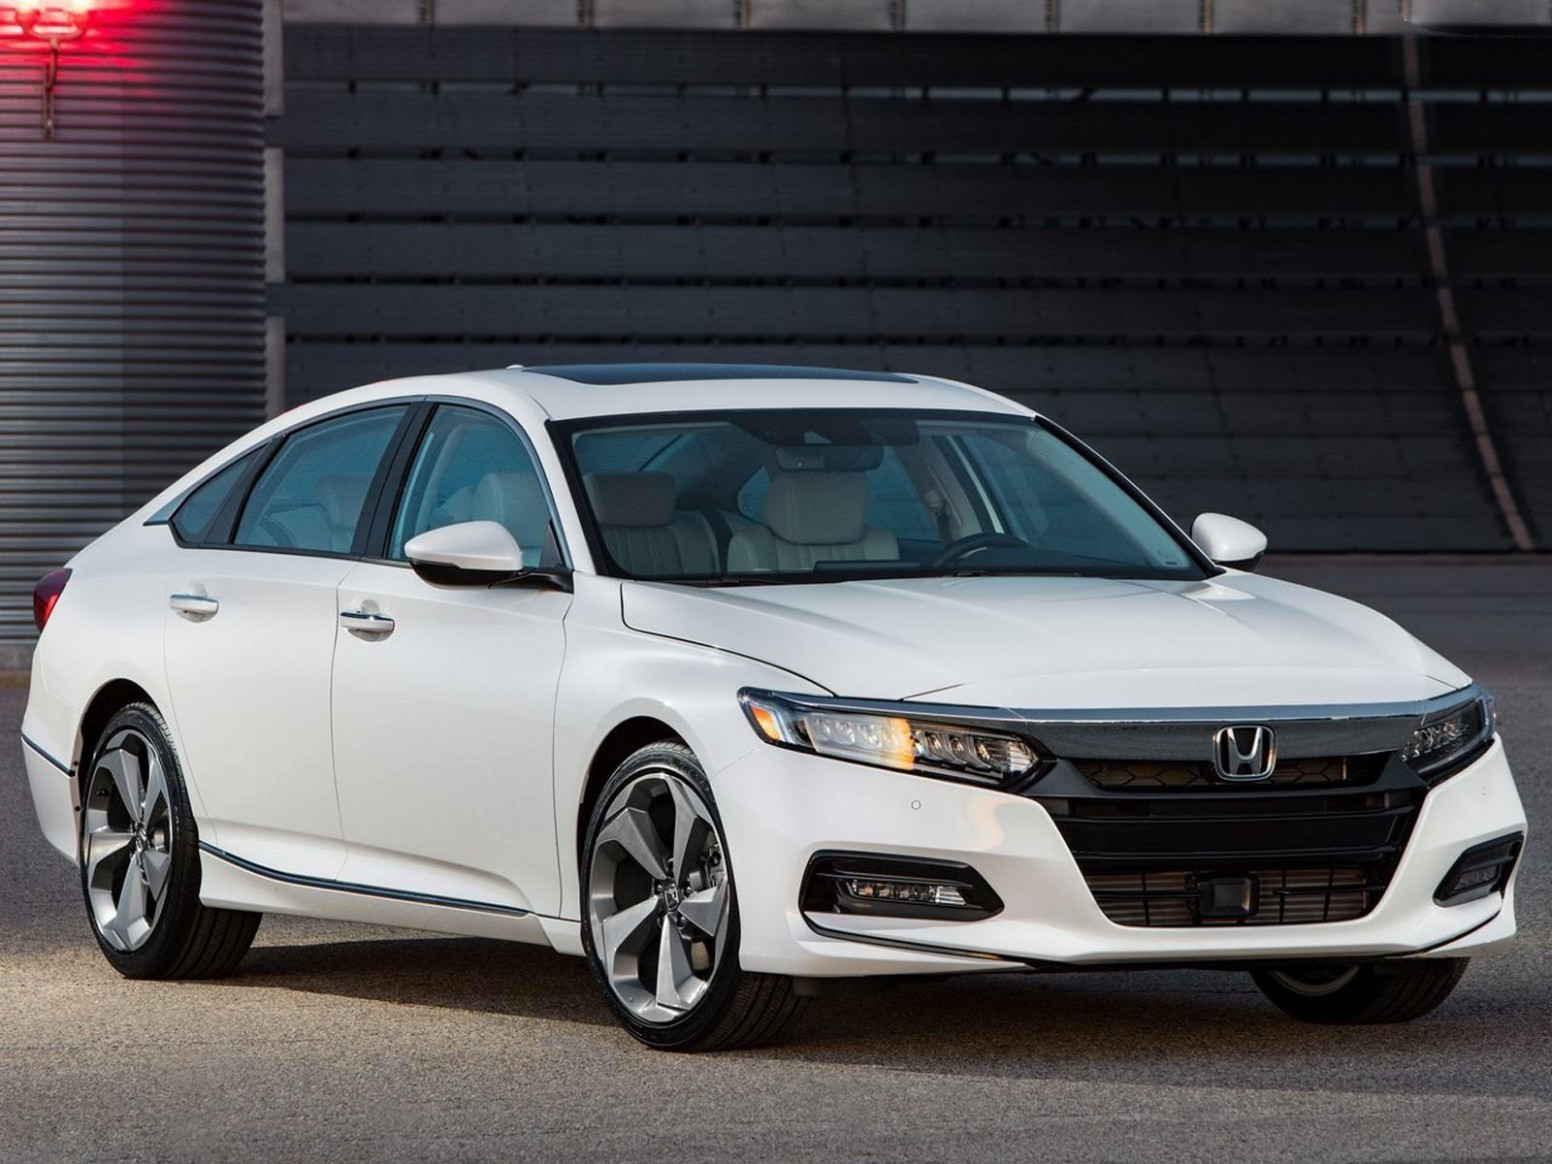 New Model and Performance What Will The 2022 Honda Accord Look Like